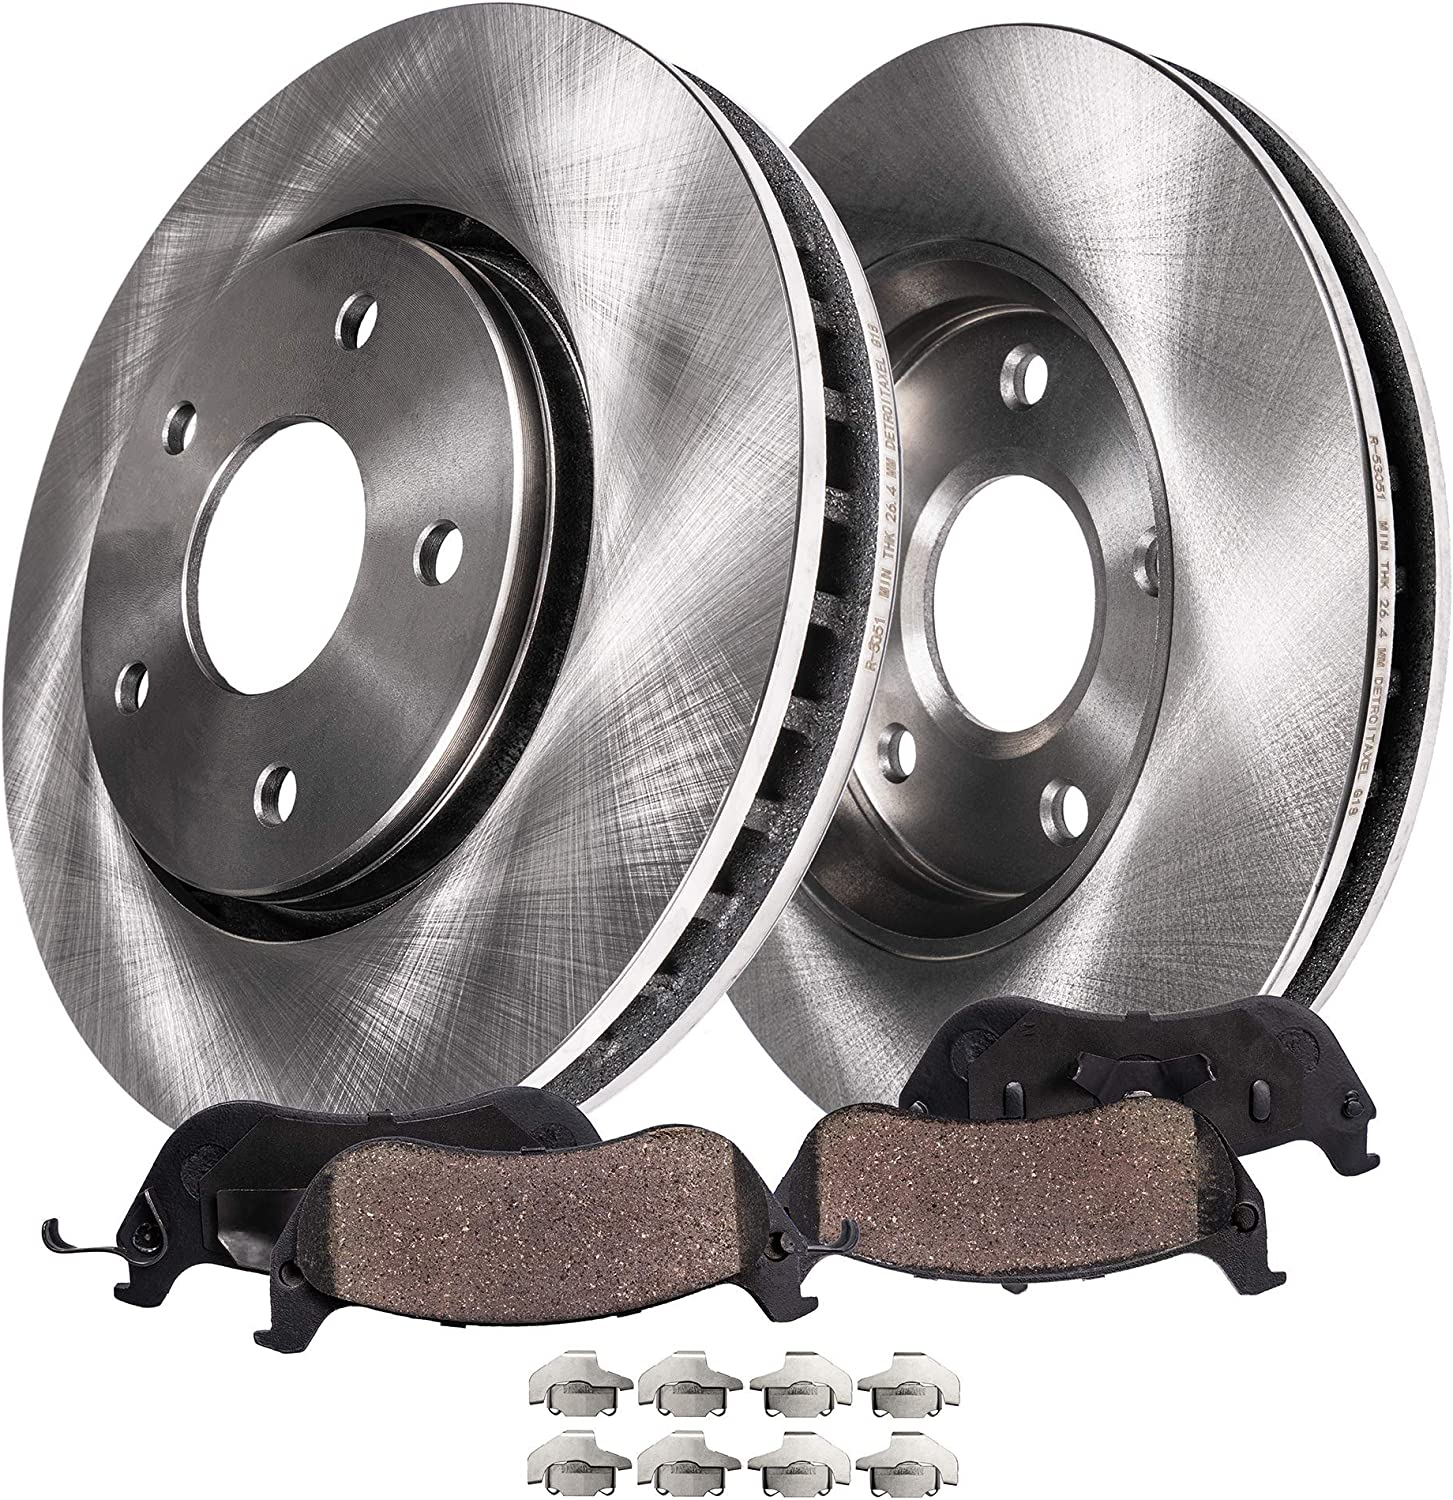 For 2011 Chevrolet Cruze Front eLine Slotted Brake Rotors Ceramic Brake Pads